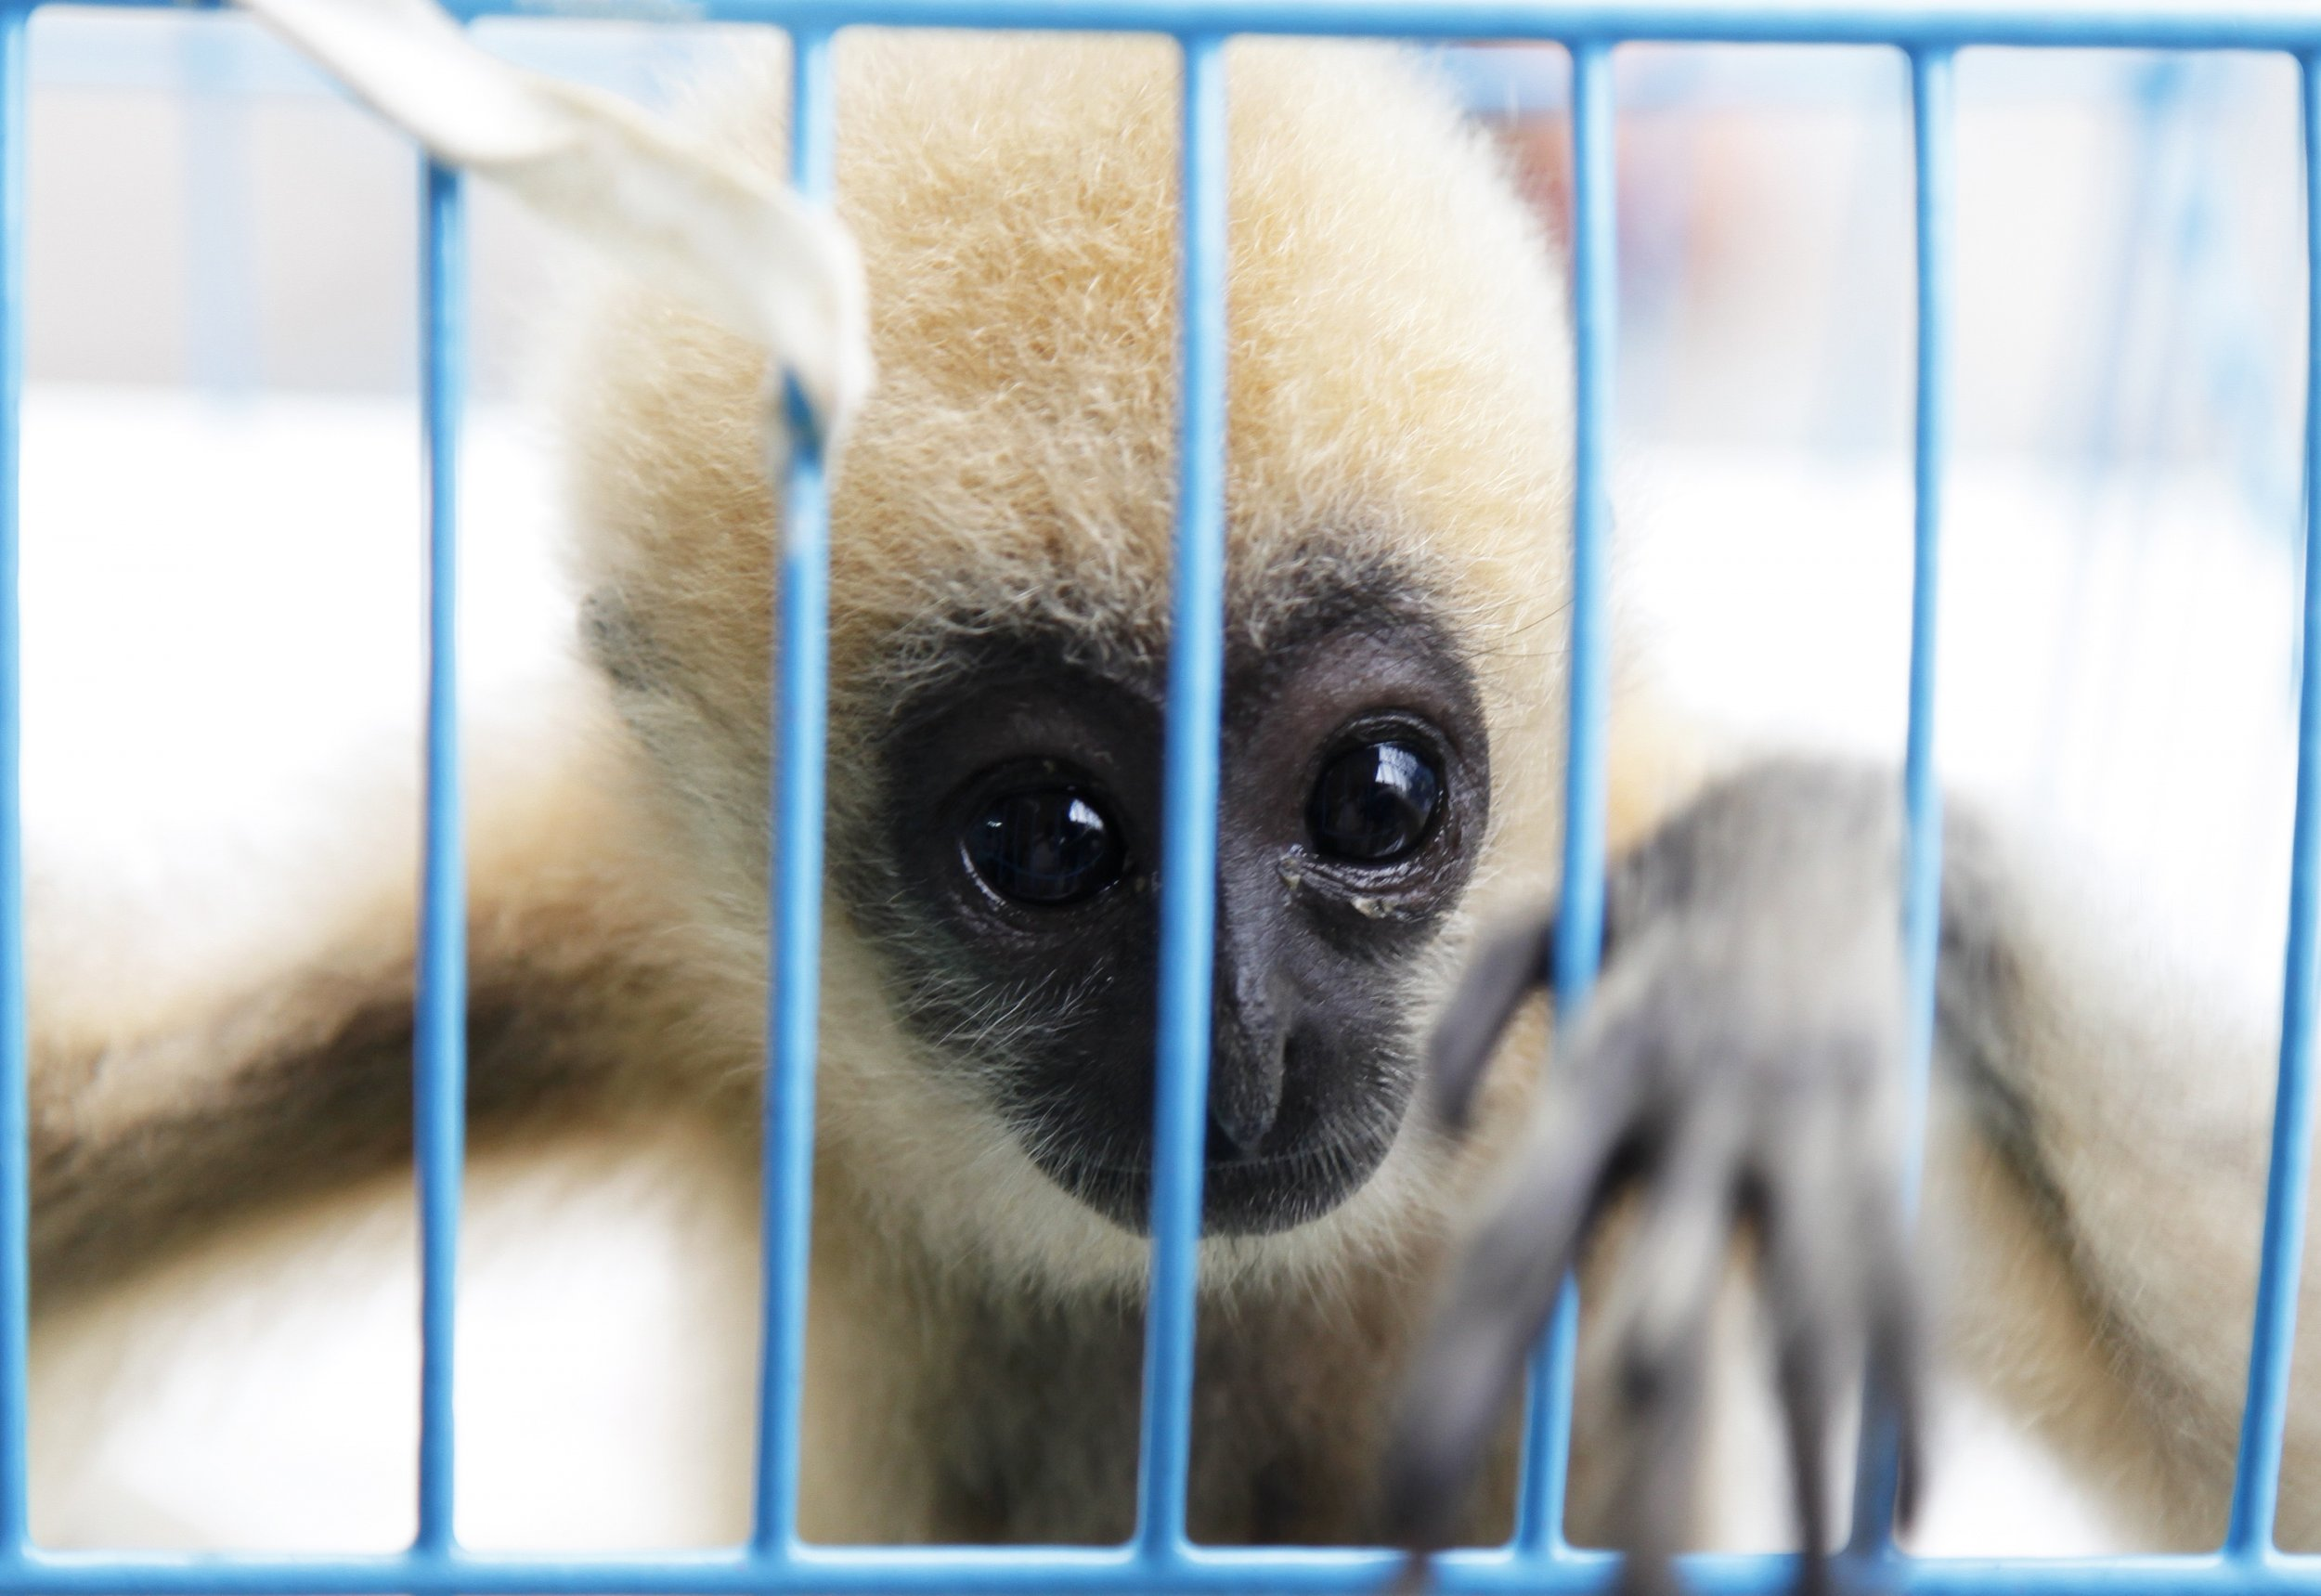 Trade In Marketplace >> Facebook Being Used to Illegally Traffic Endangered Animals